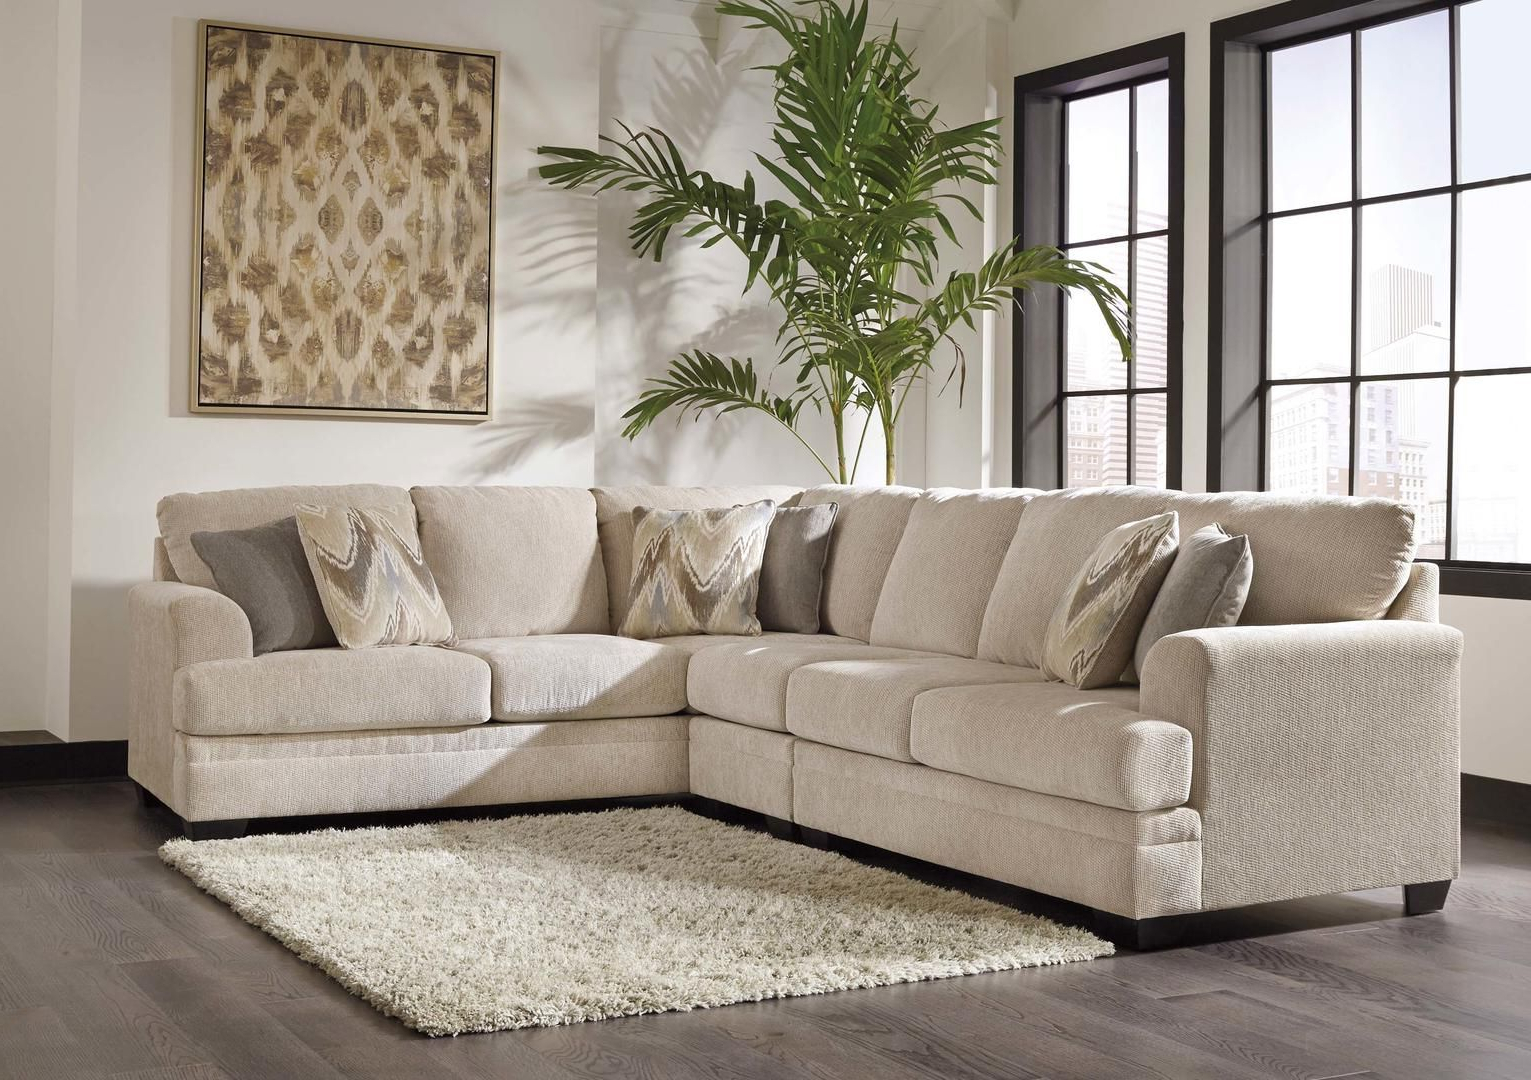 Ameer 81806 55 46 67 3 Piece Fabric Sectional Sofa With Left Arm Pertaining To 2018 Malbry Point 3 Piece Sectionals With Raf Chaise (View 12 of 20)